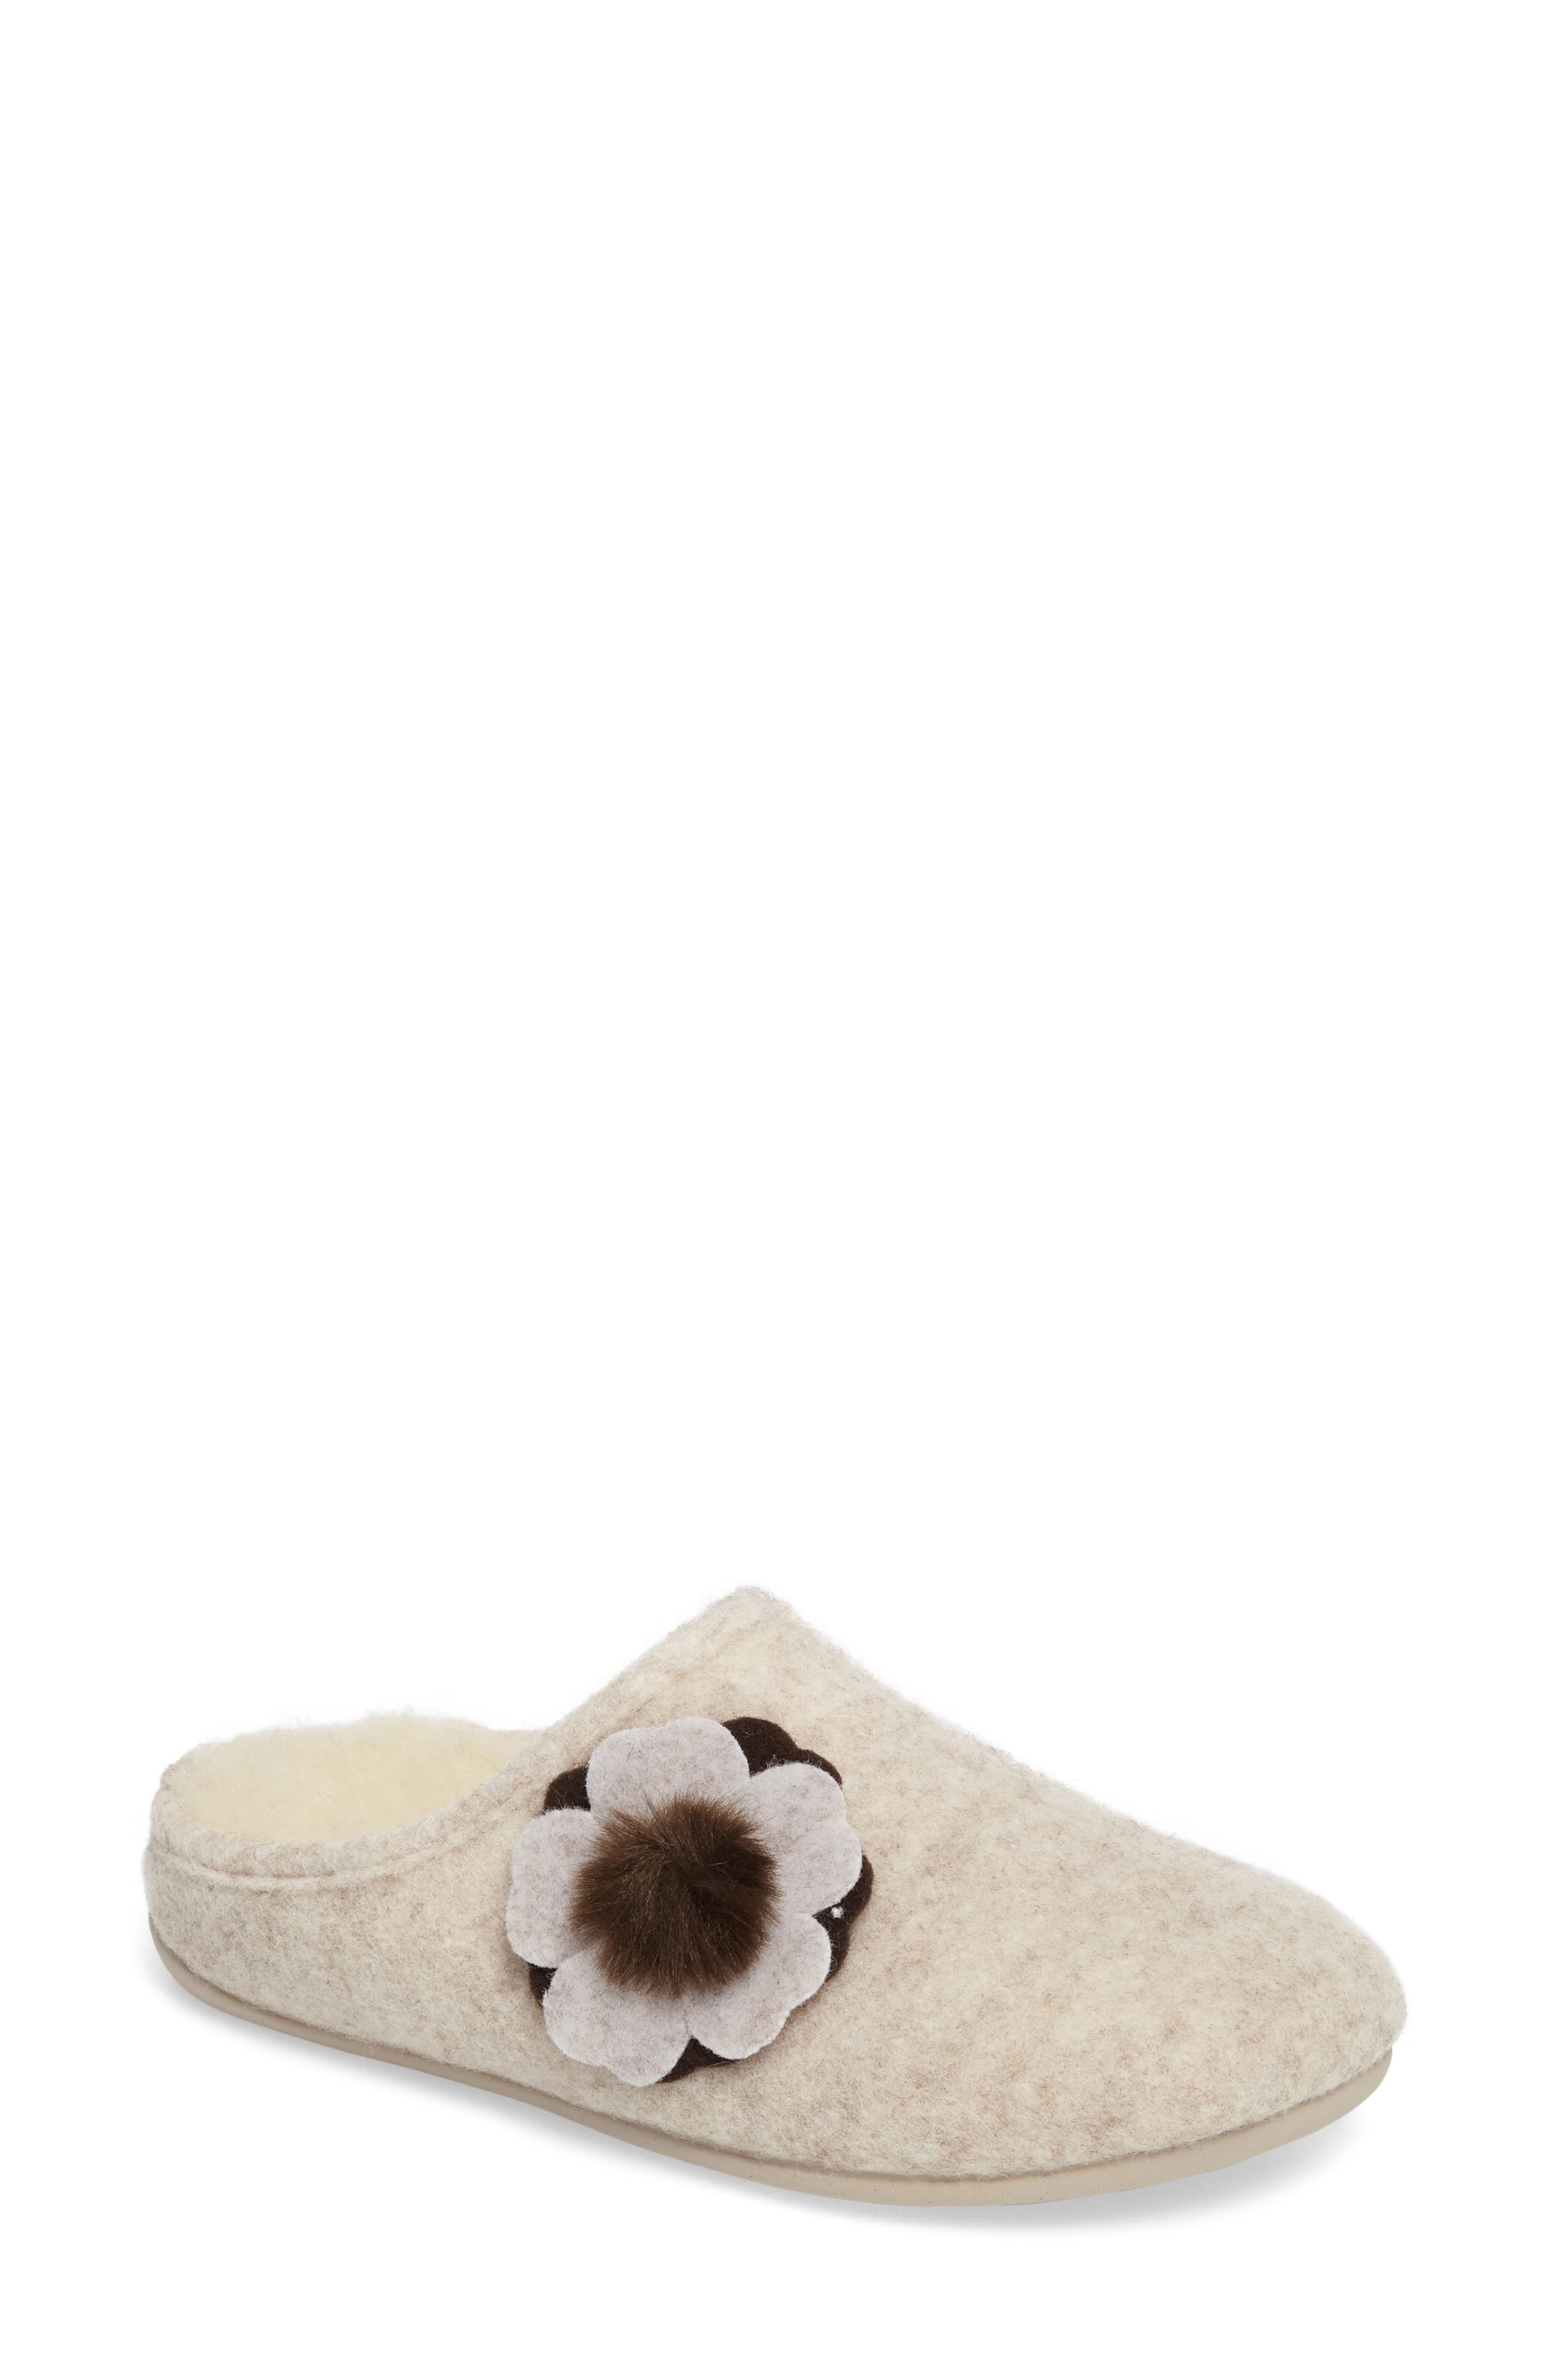 Emma Slipper,                             Main thumbnail 1, color,                             Cream Fabric